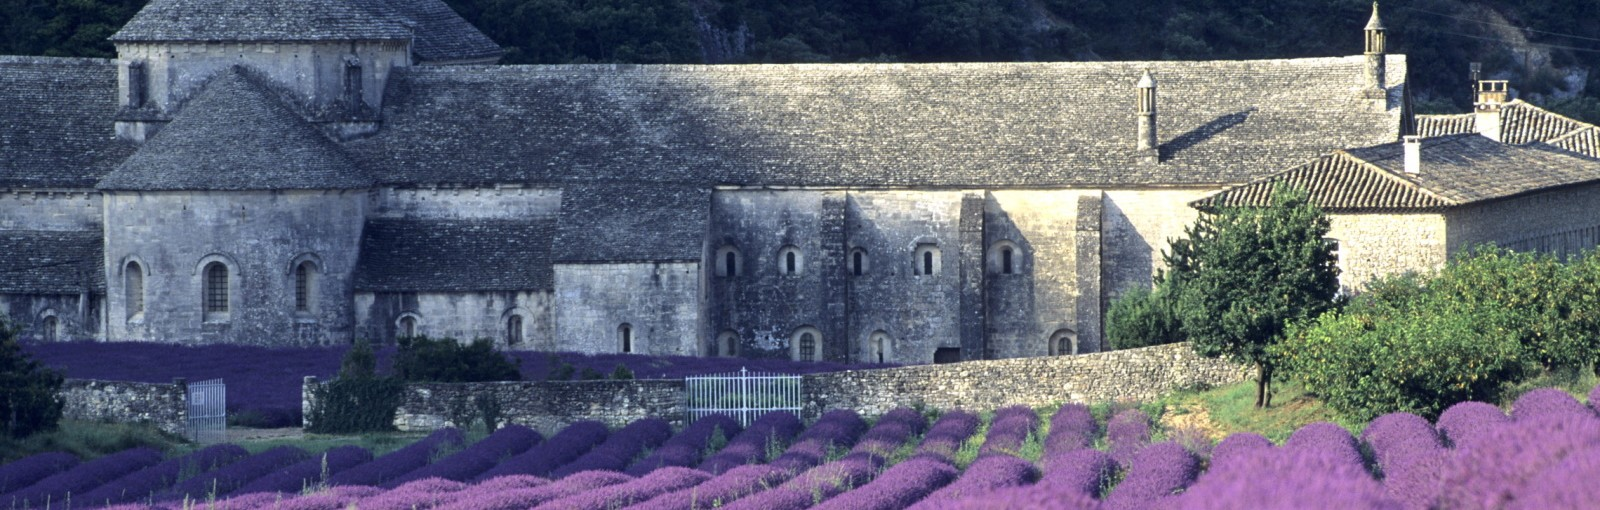 Tours Two days in Provence - Multi-régional - Circuitos desde Paris